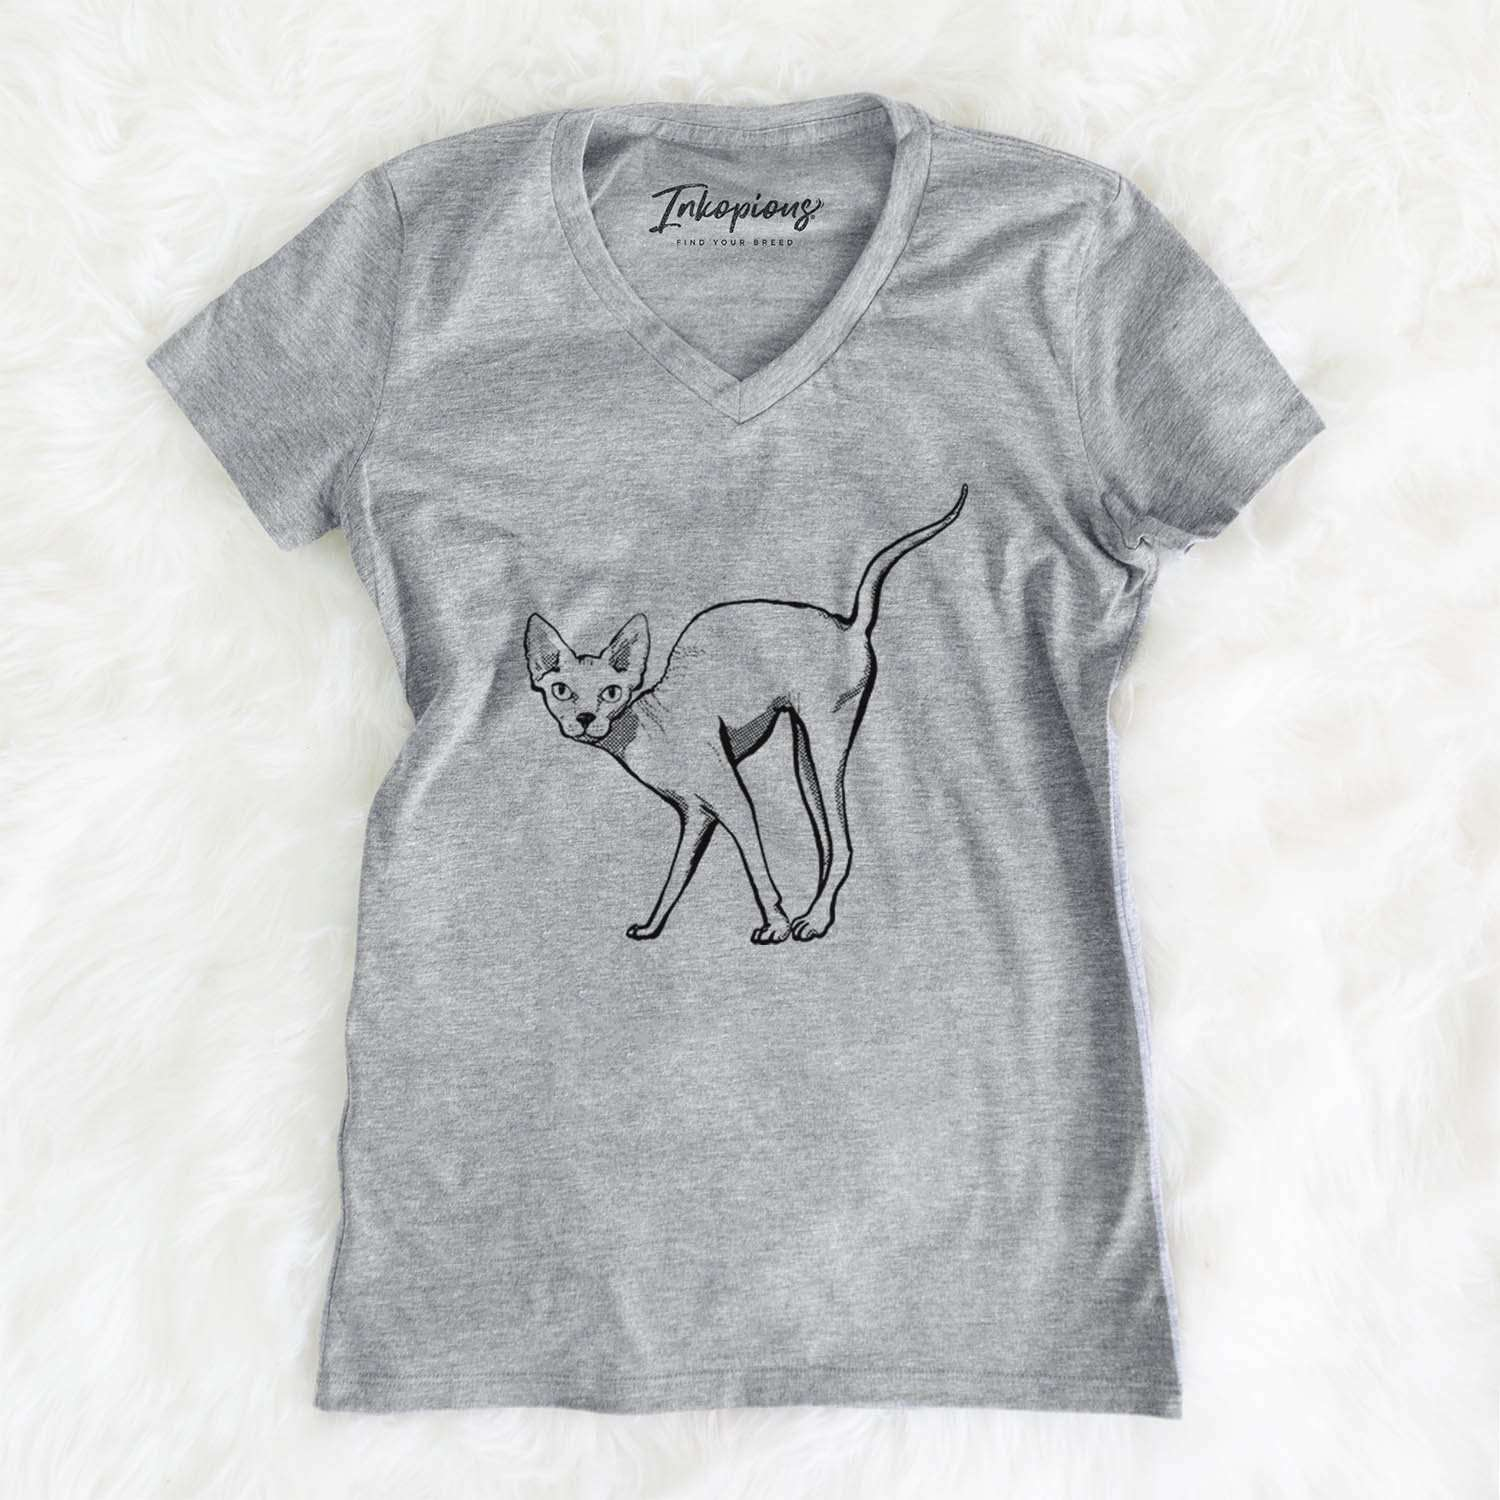 Halftone Sphynx  - Women's Modern Fit V-neck Shirt